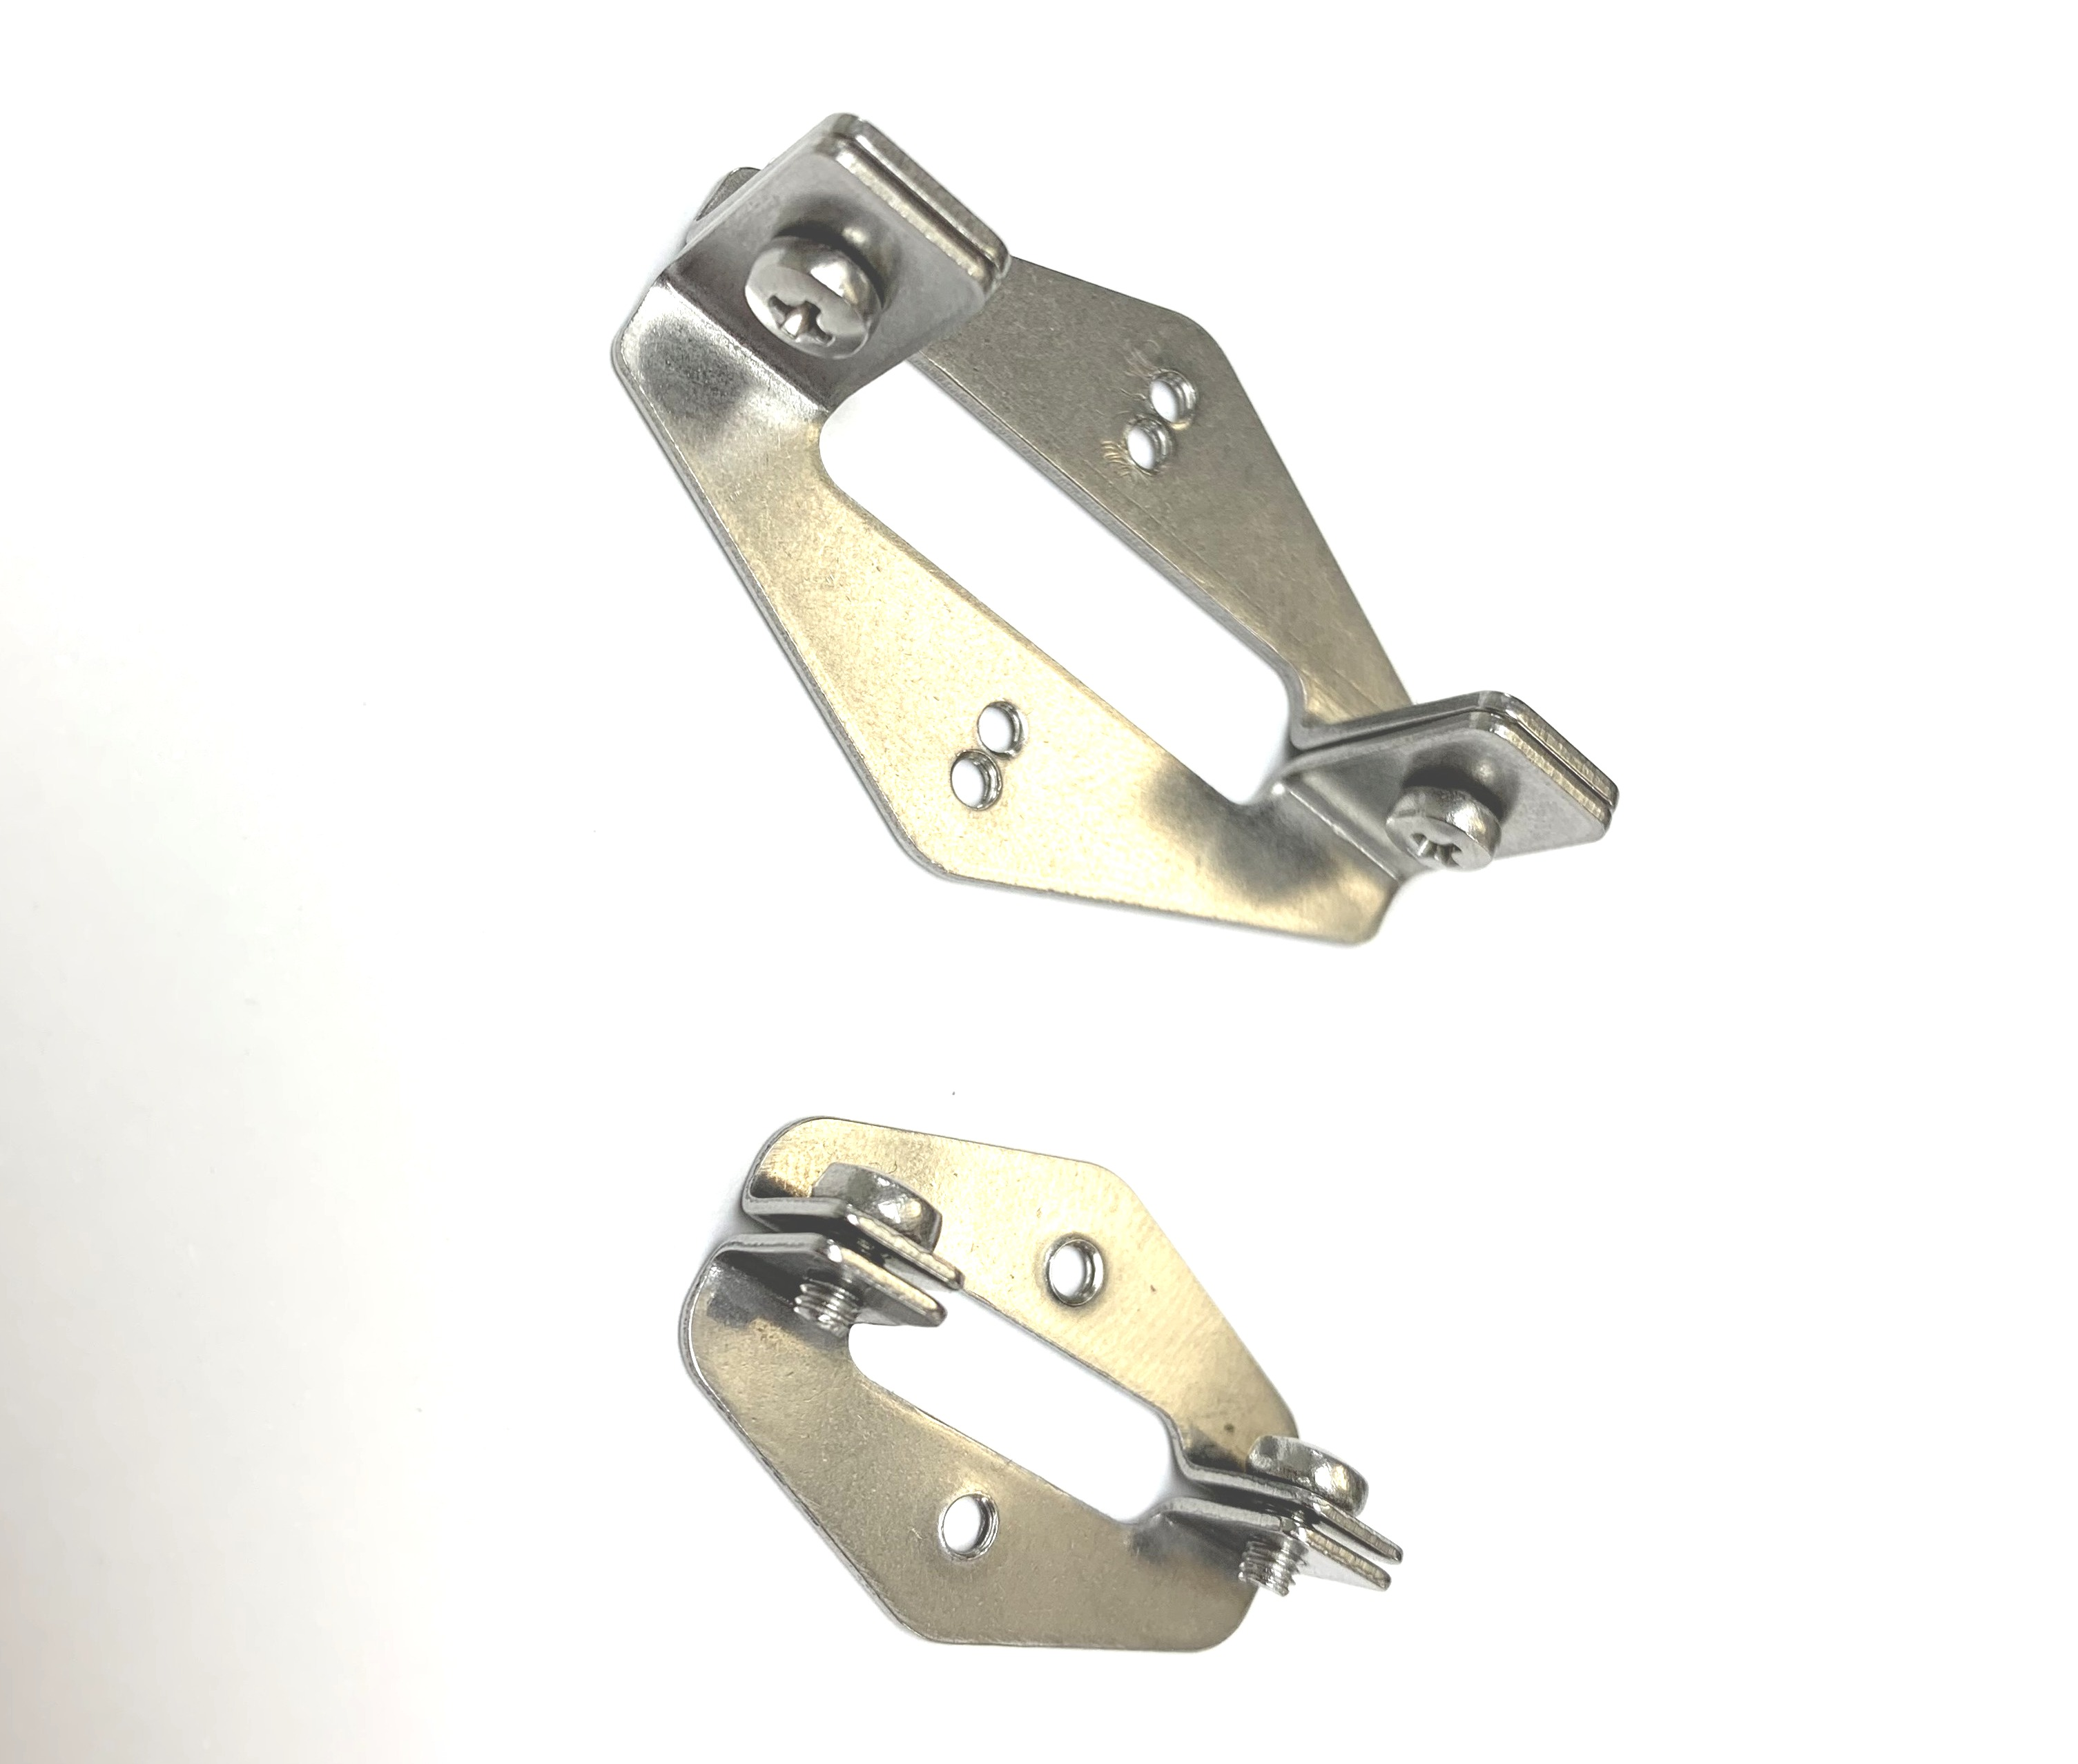 Locking Brackets for Miniature & Standard Connectors